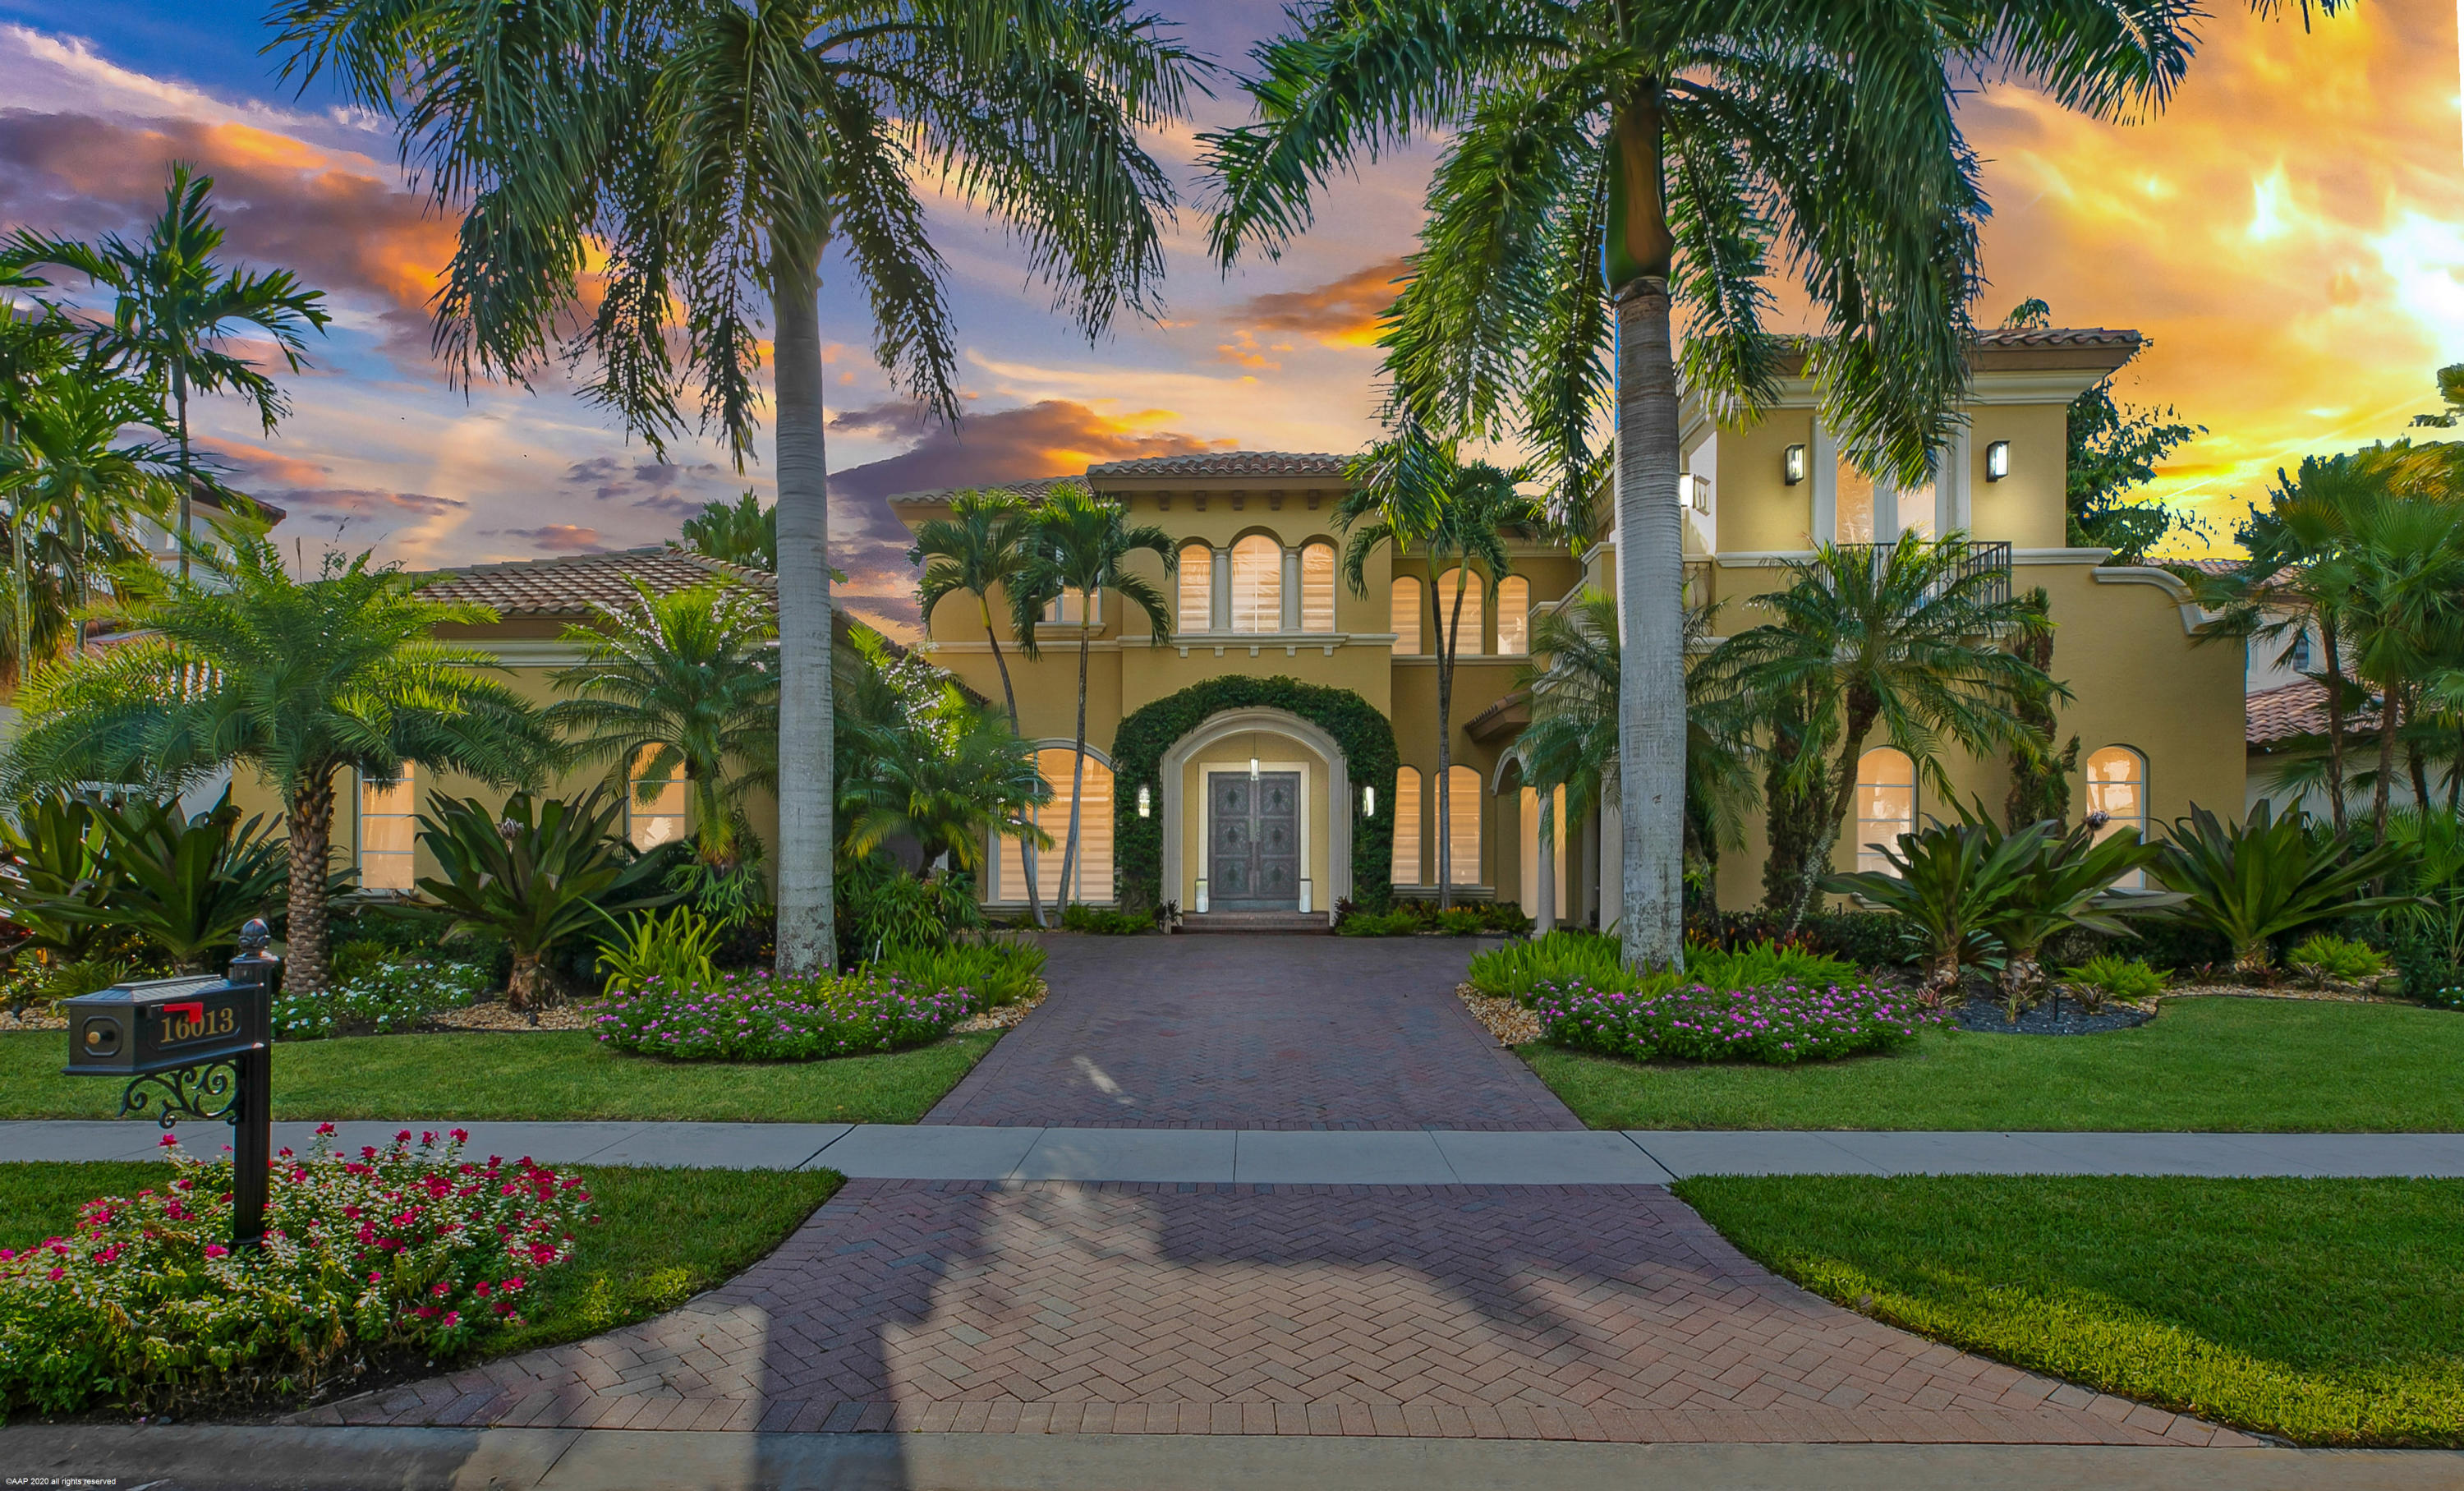 Photo of 16013 D Alene Drive, Delray Beach, FL 33446